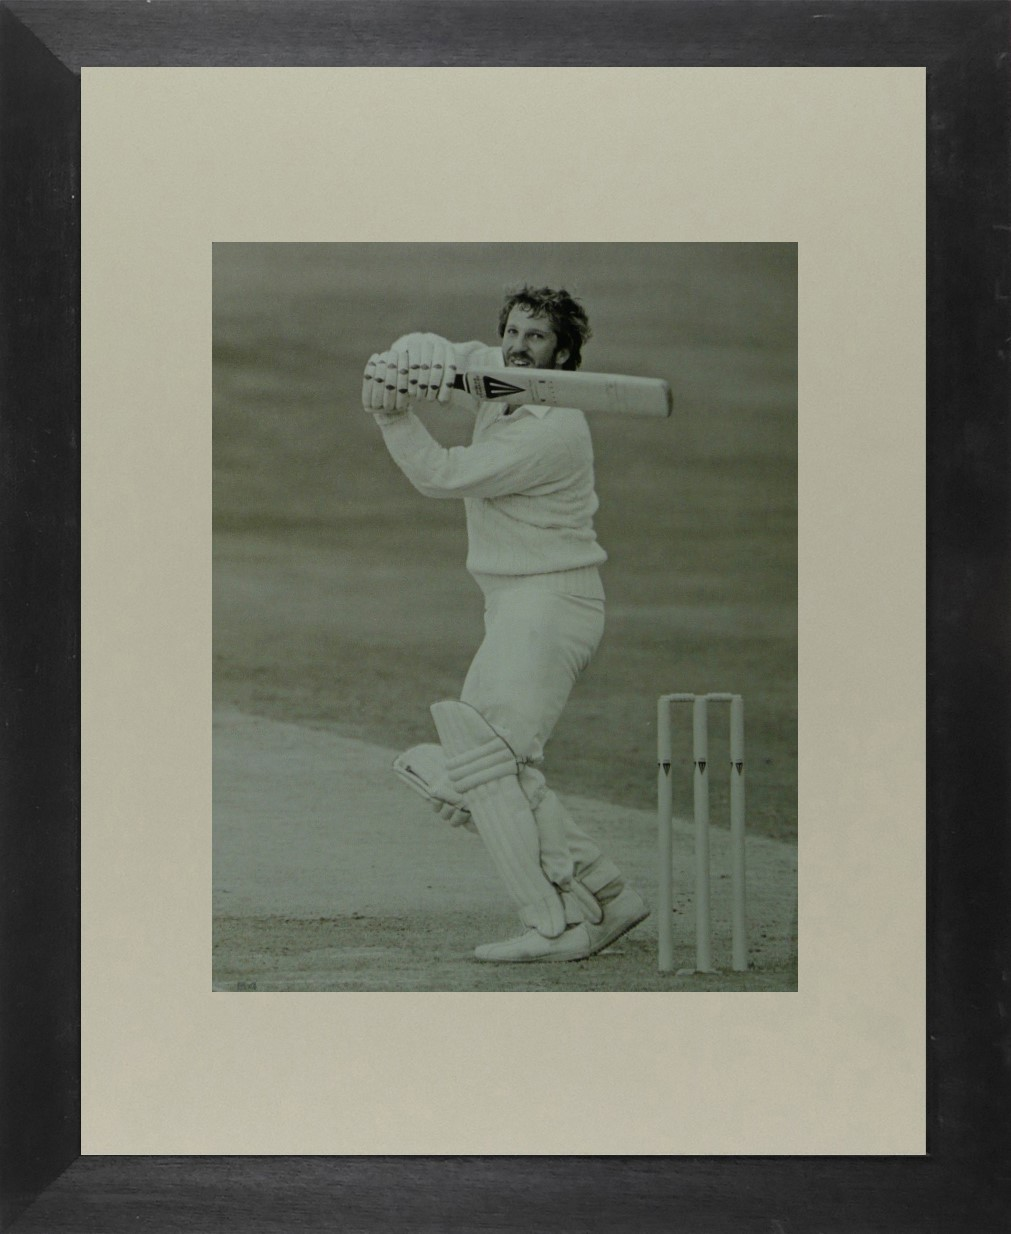 Ian Botham in front of wicket (Cricket) - Framed Picture 11 x 14